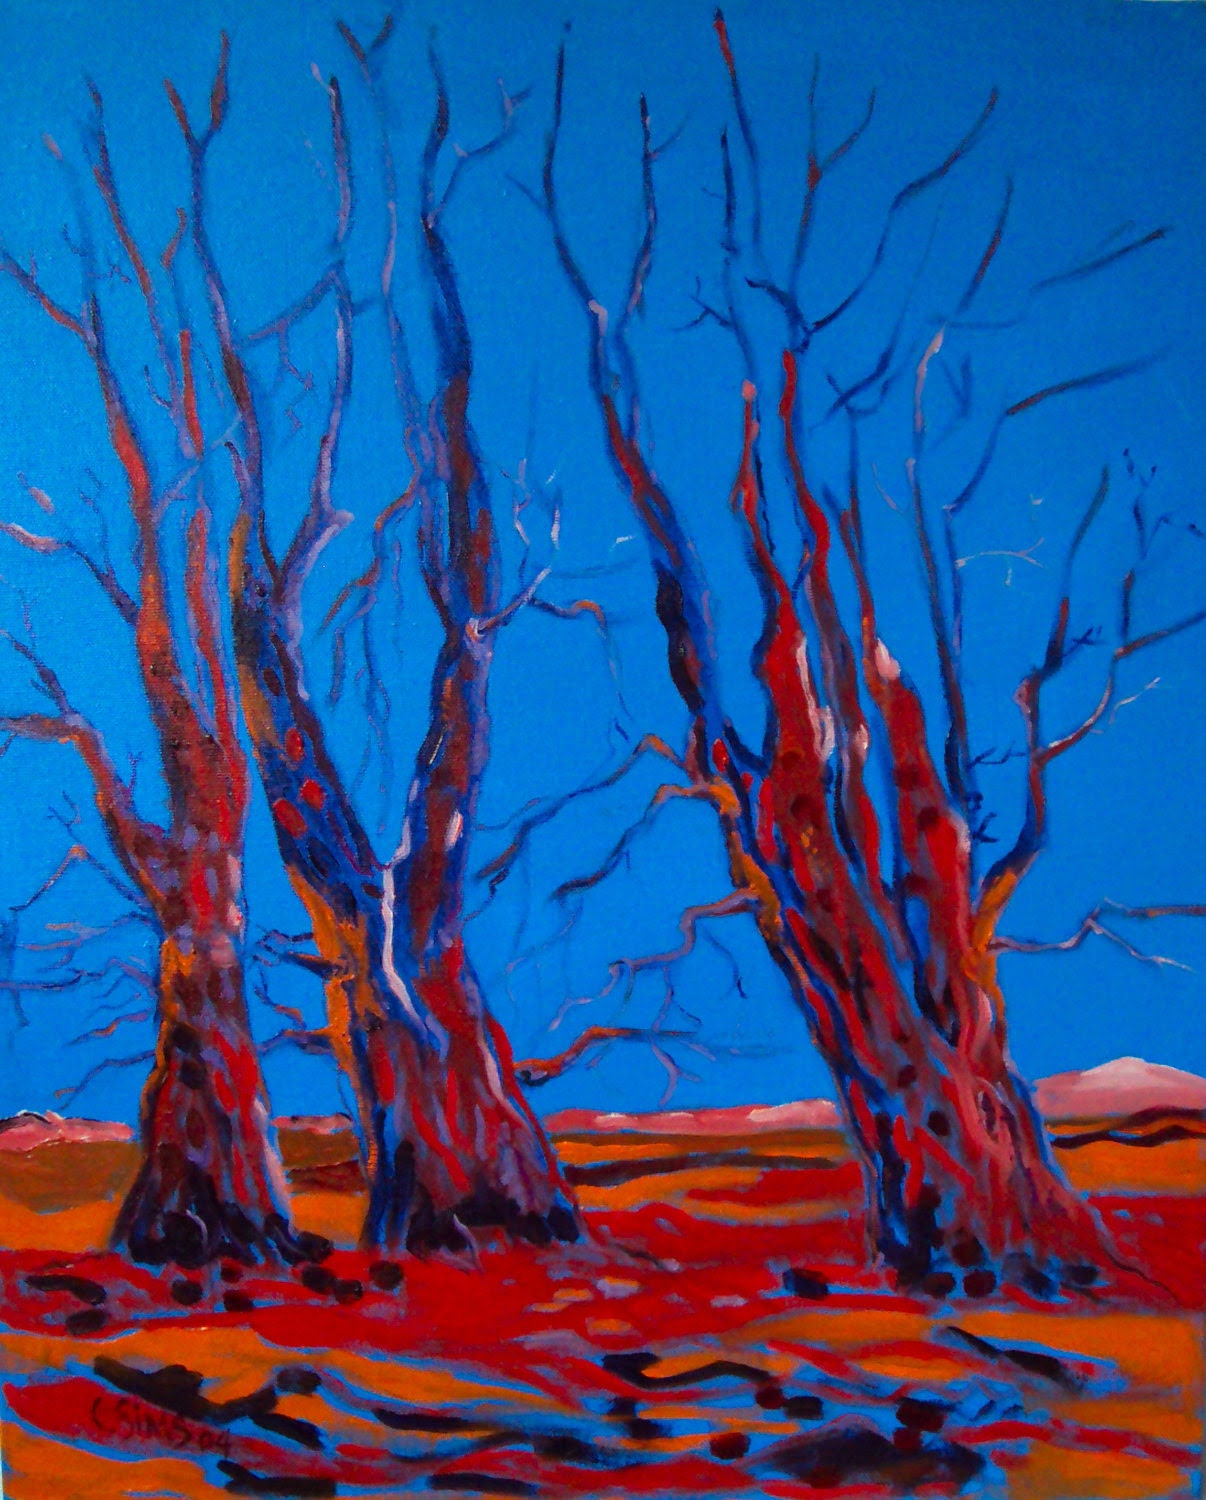 Red Trees with Blue Sky / Expressionism / Oil Painting on Canvas - SingingTrees